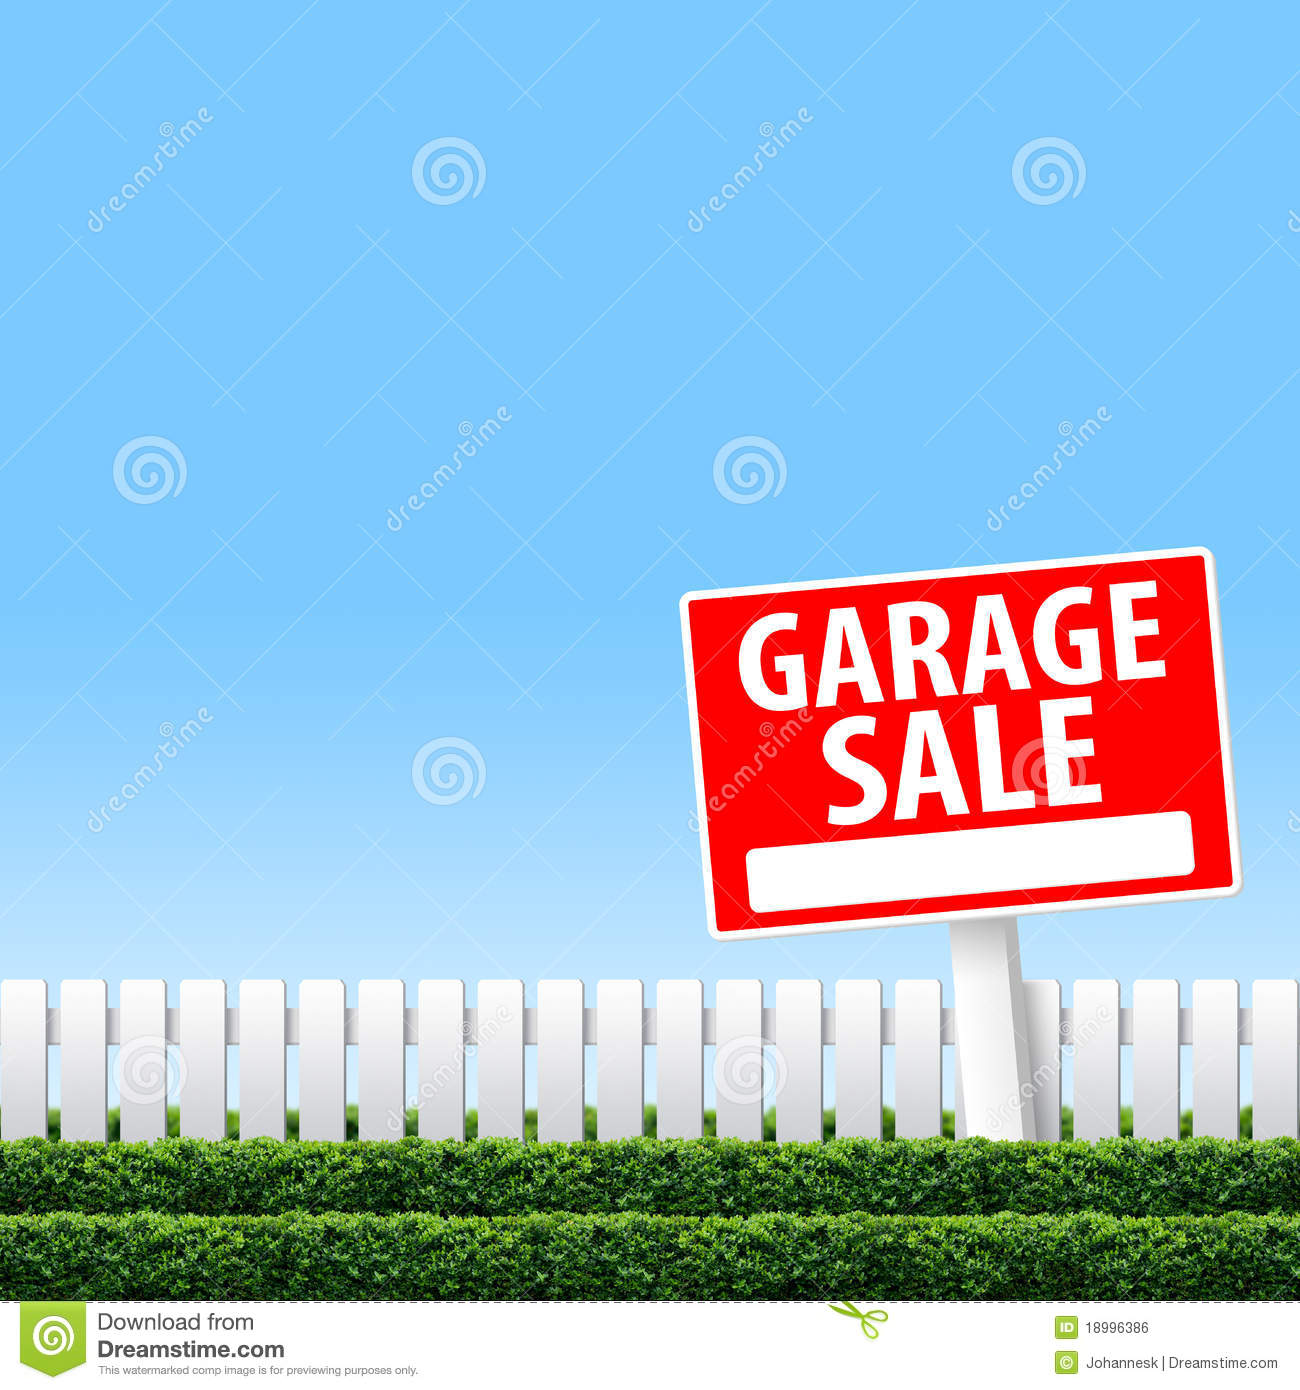 Garage Sale Sign Royalty Free Stock Image Image 18996386